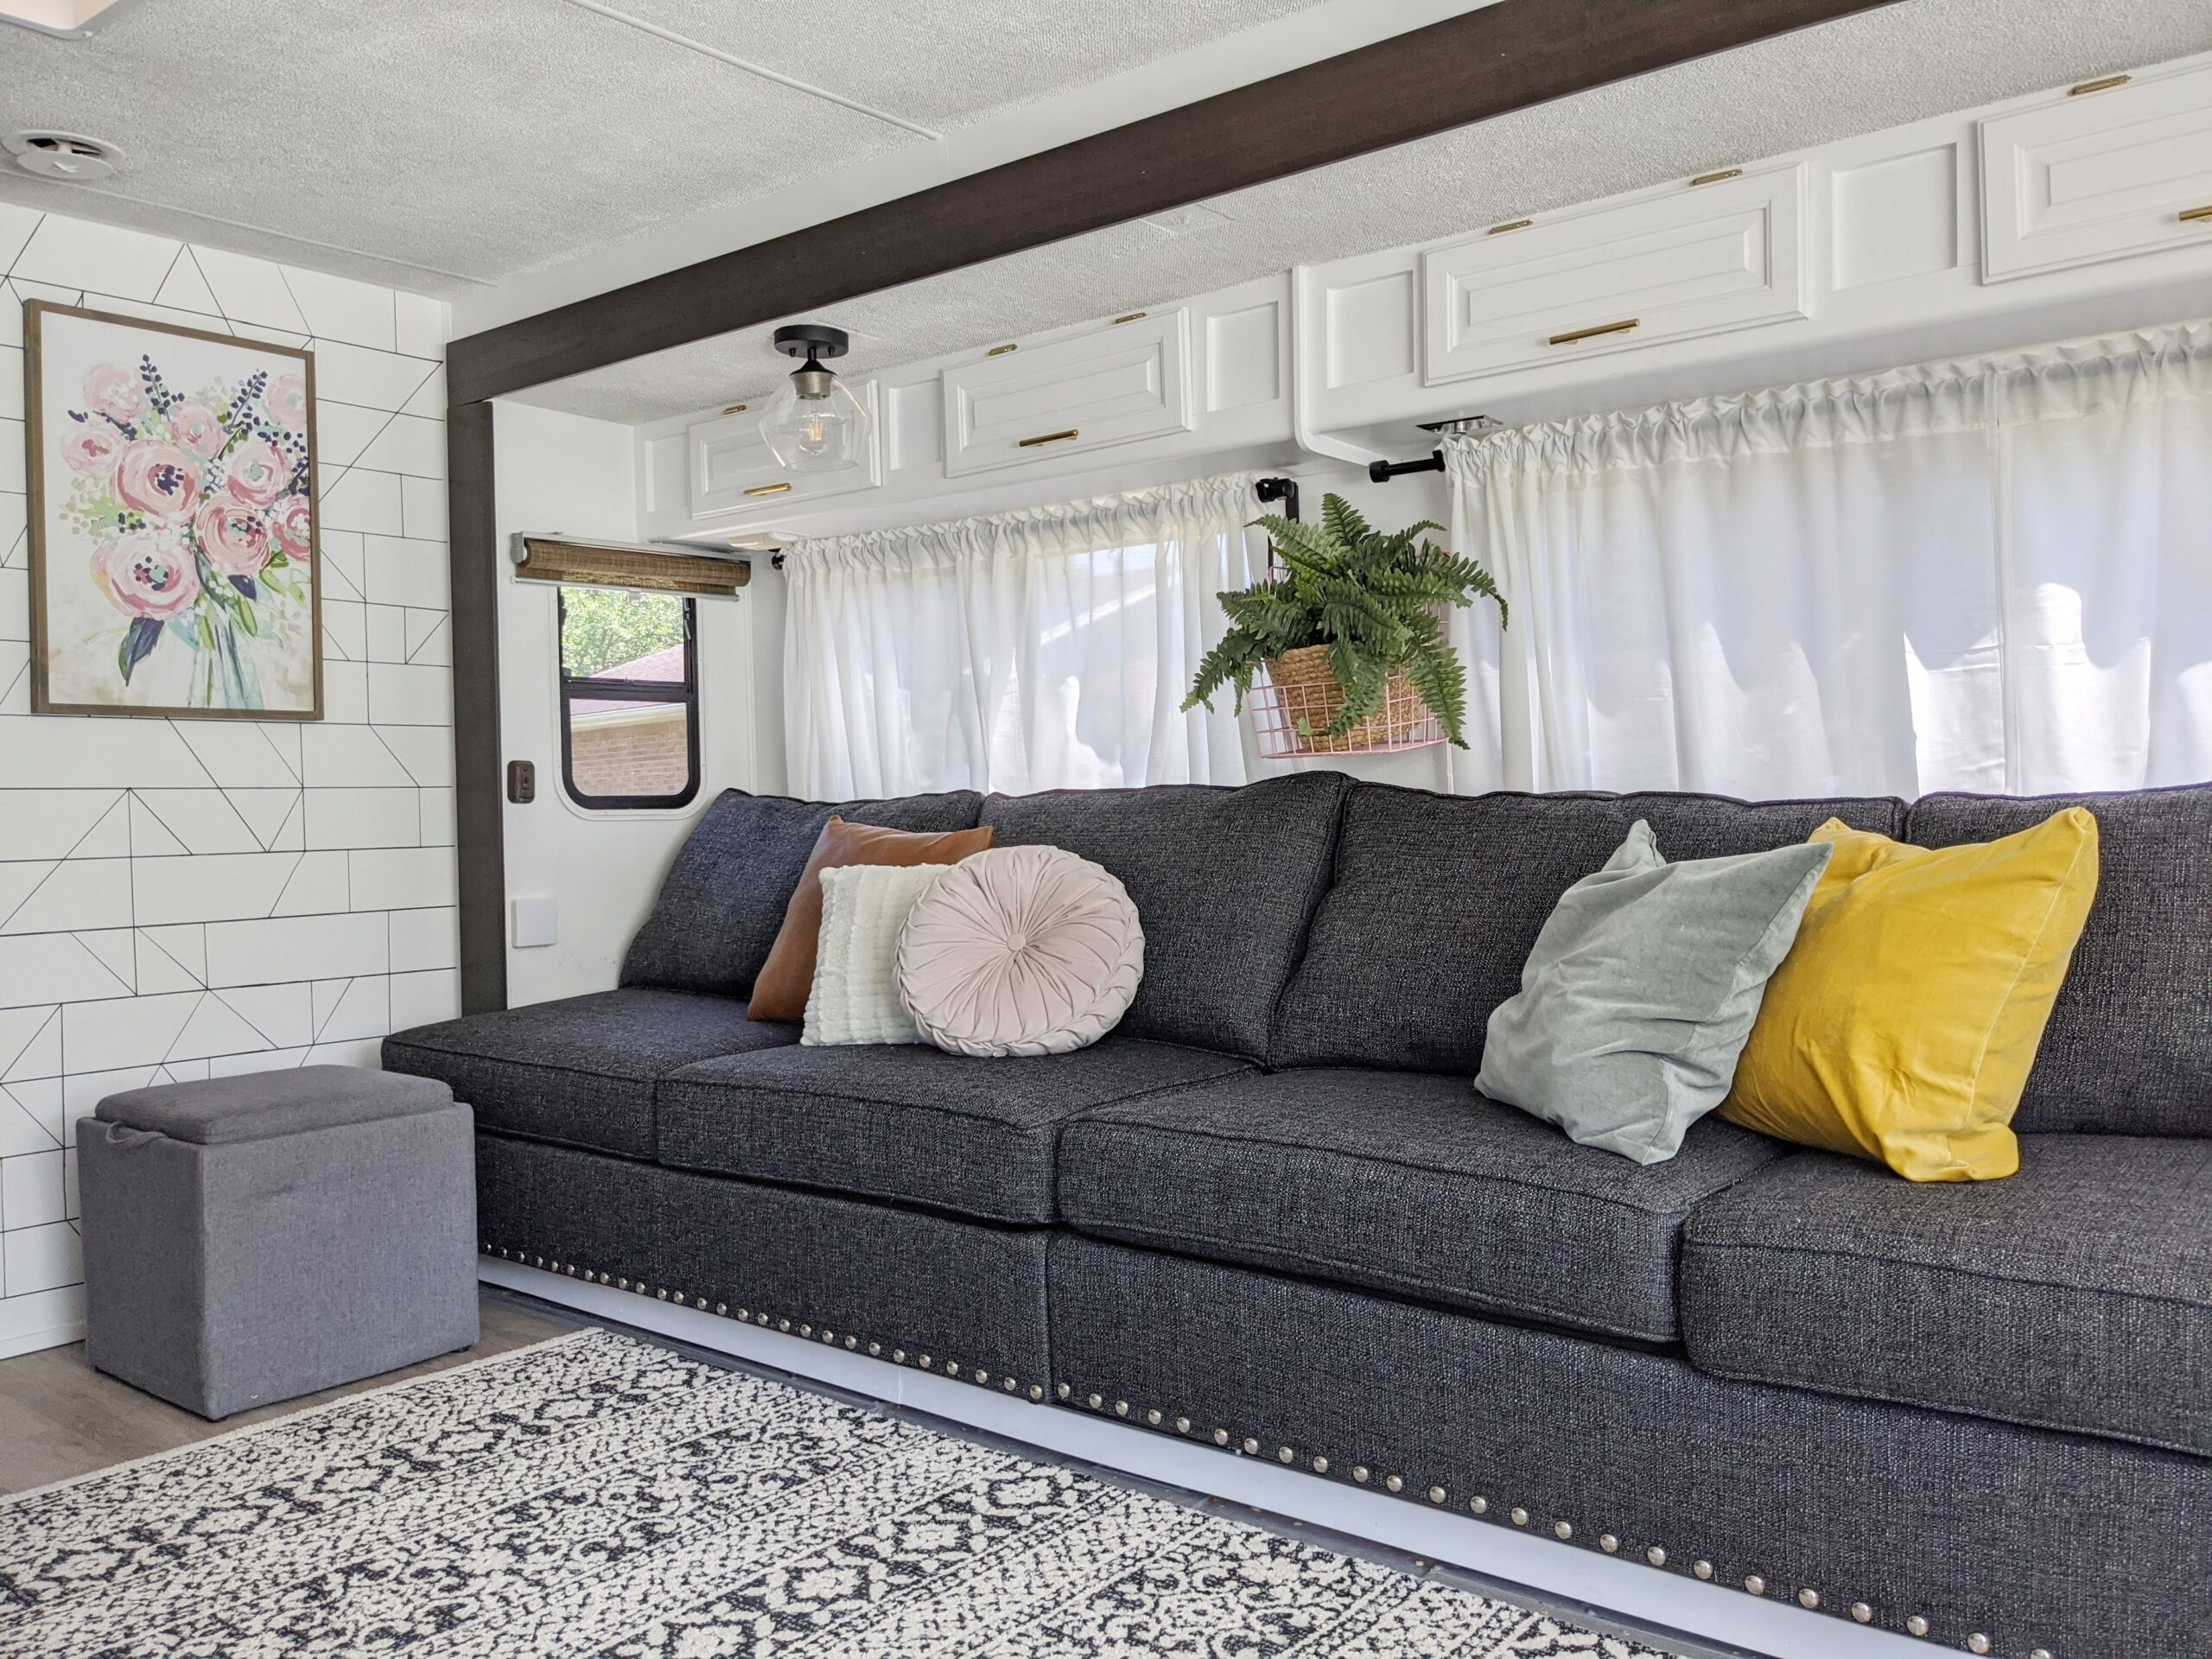 Renovated Motorhome with sharpie wall